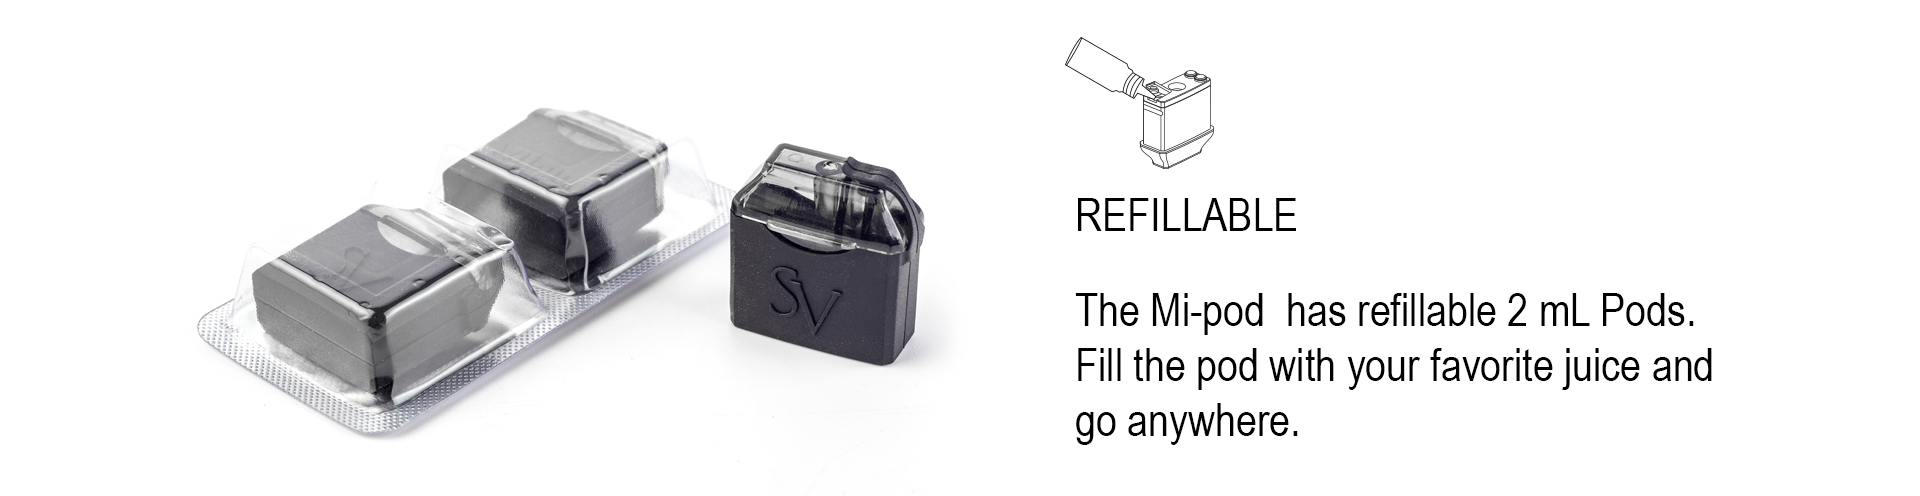 refillable-pods